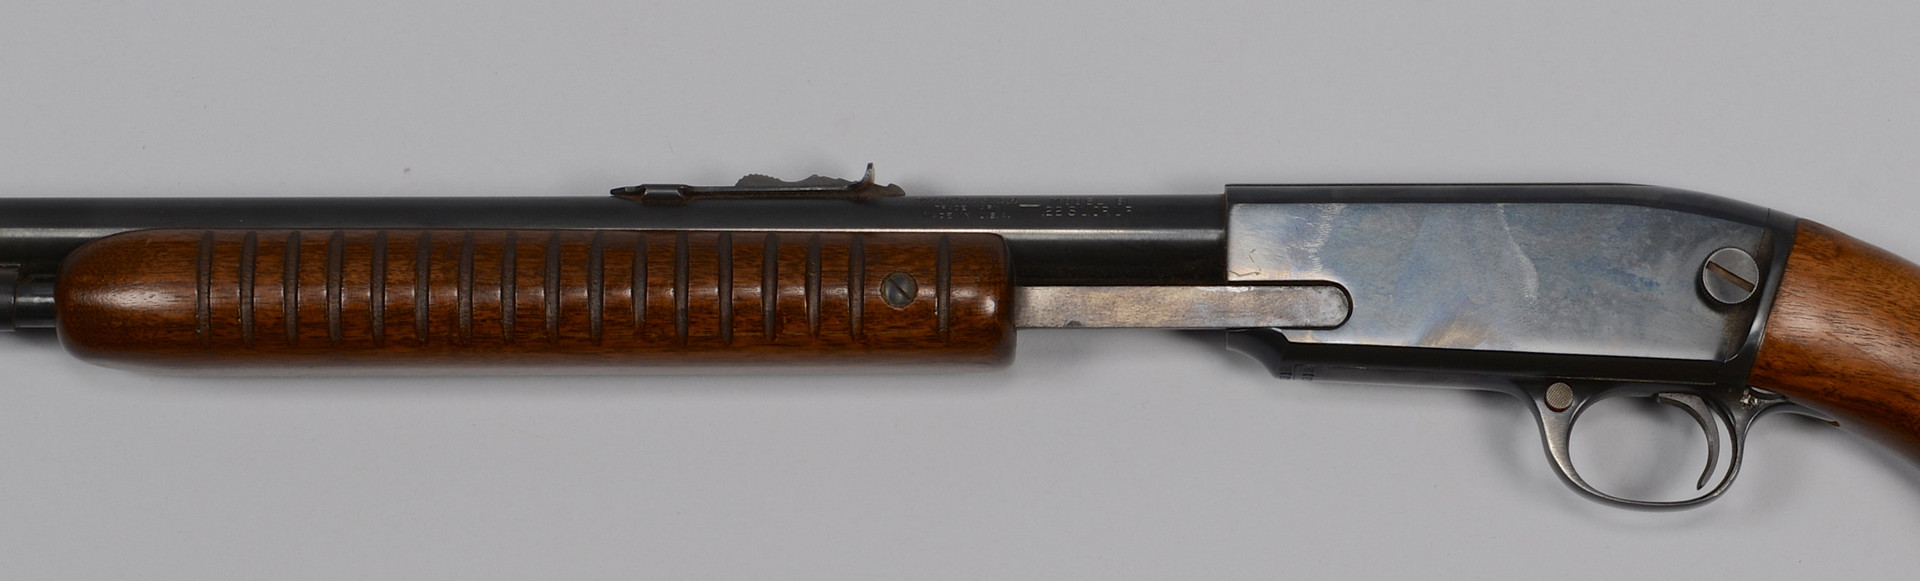 Lot 718: Winchester Model 61 Pump Action Rifle